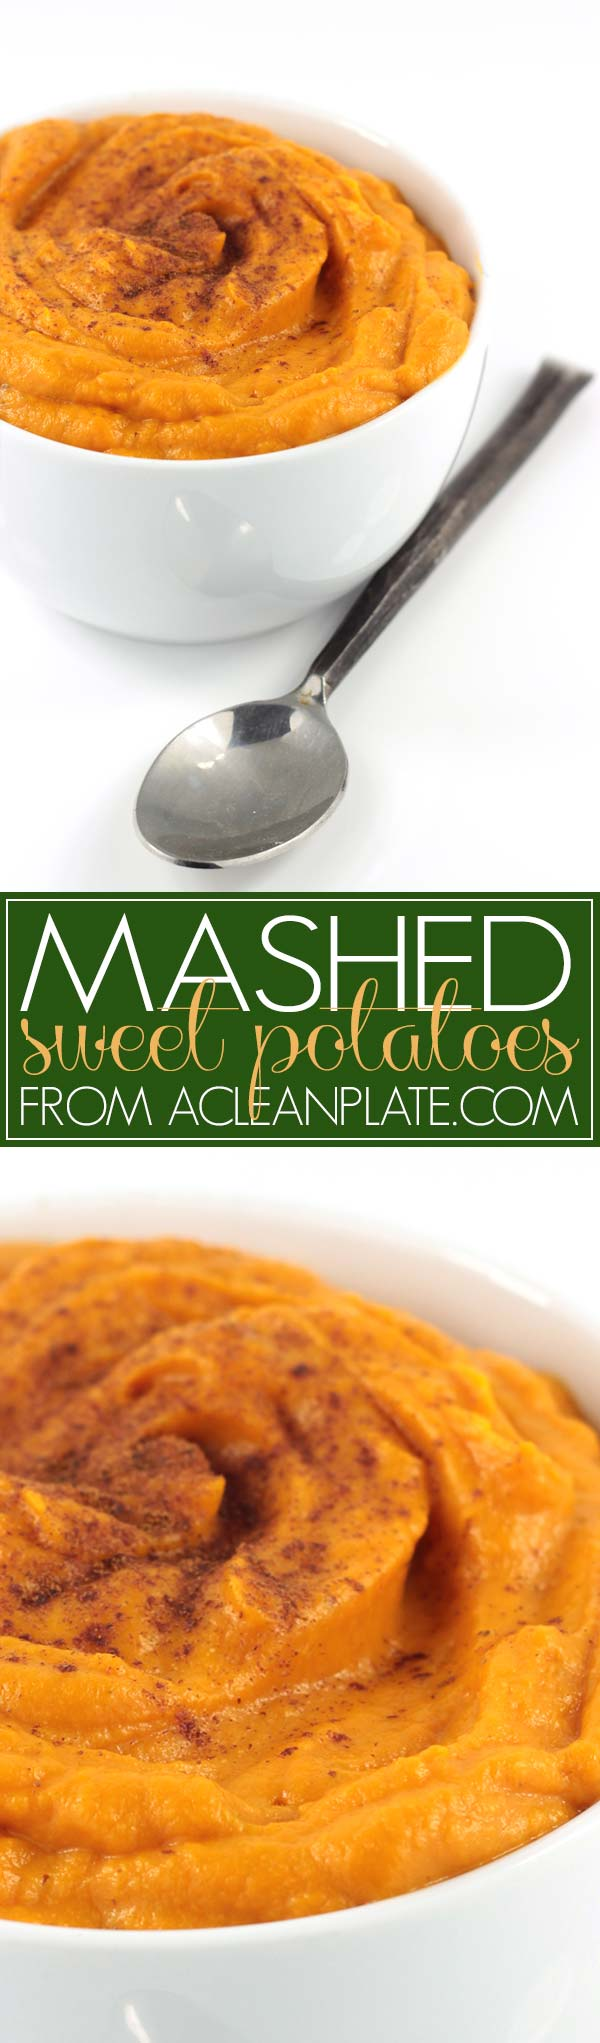 Mashed Sweet Potatoes recipe from acleanplate.com